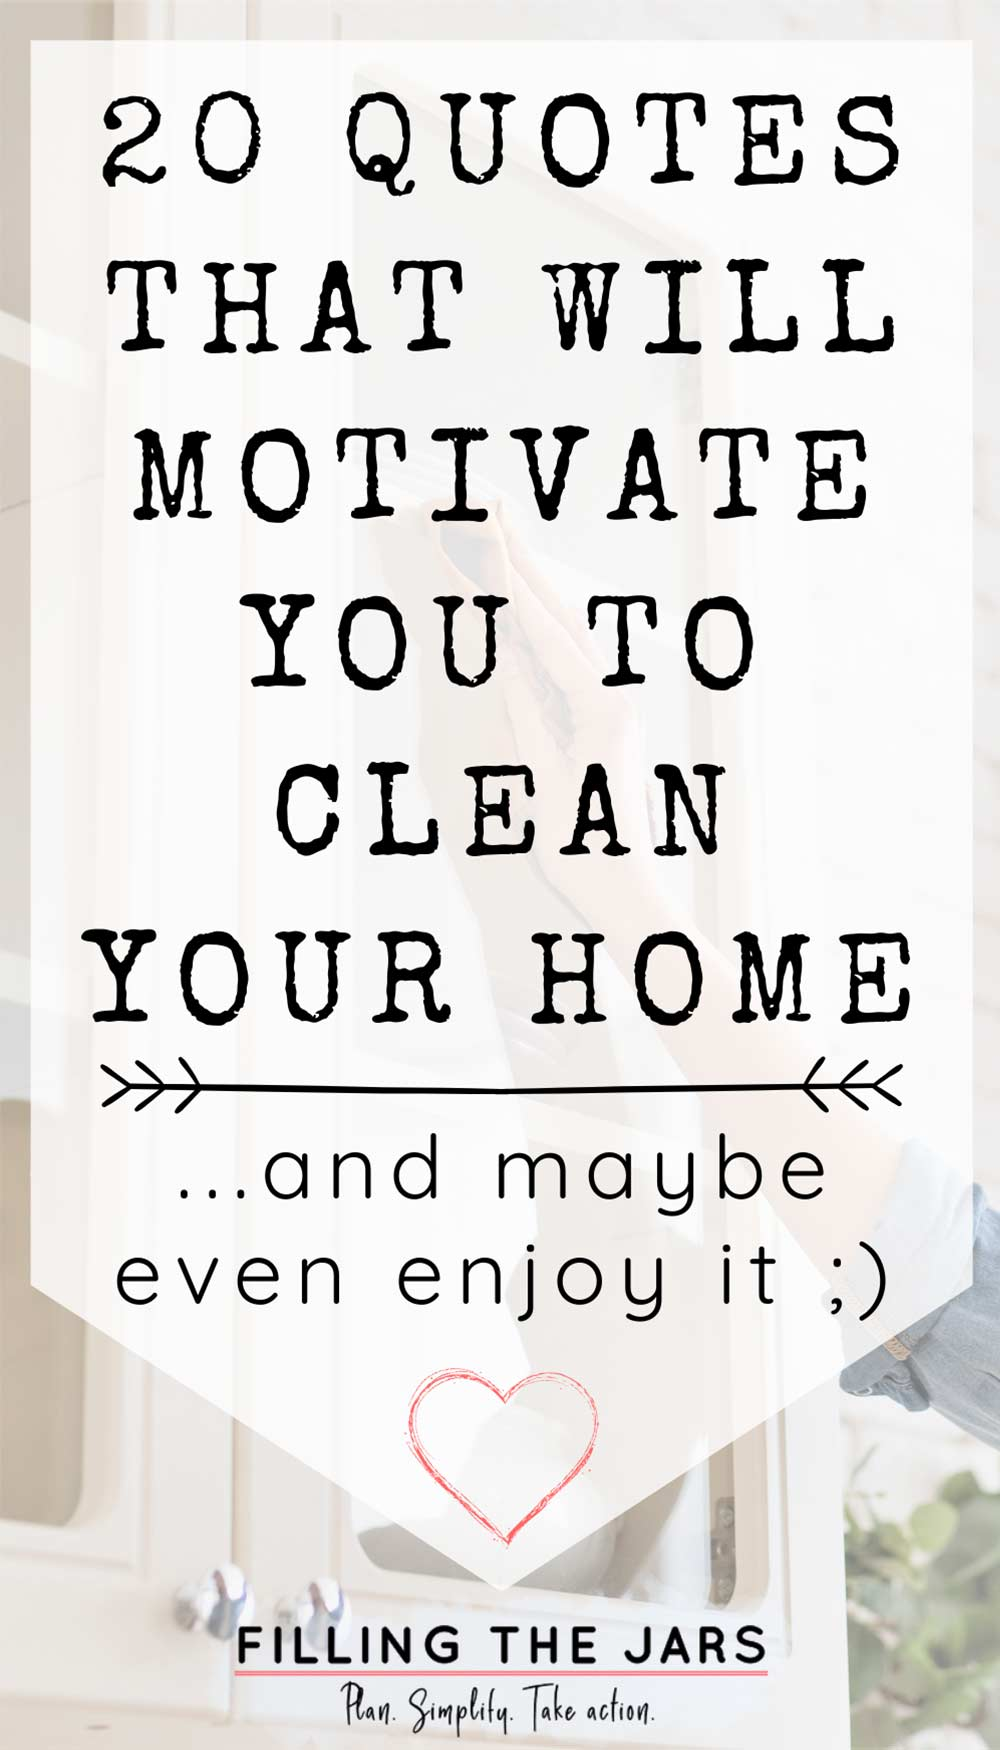 Text quotes that will motivate you to clean on white background over image of woman cleaning glass cabinet door in white kitchen.